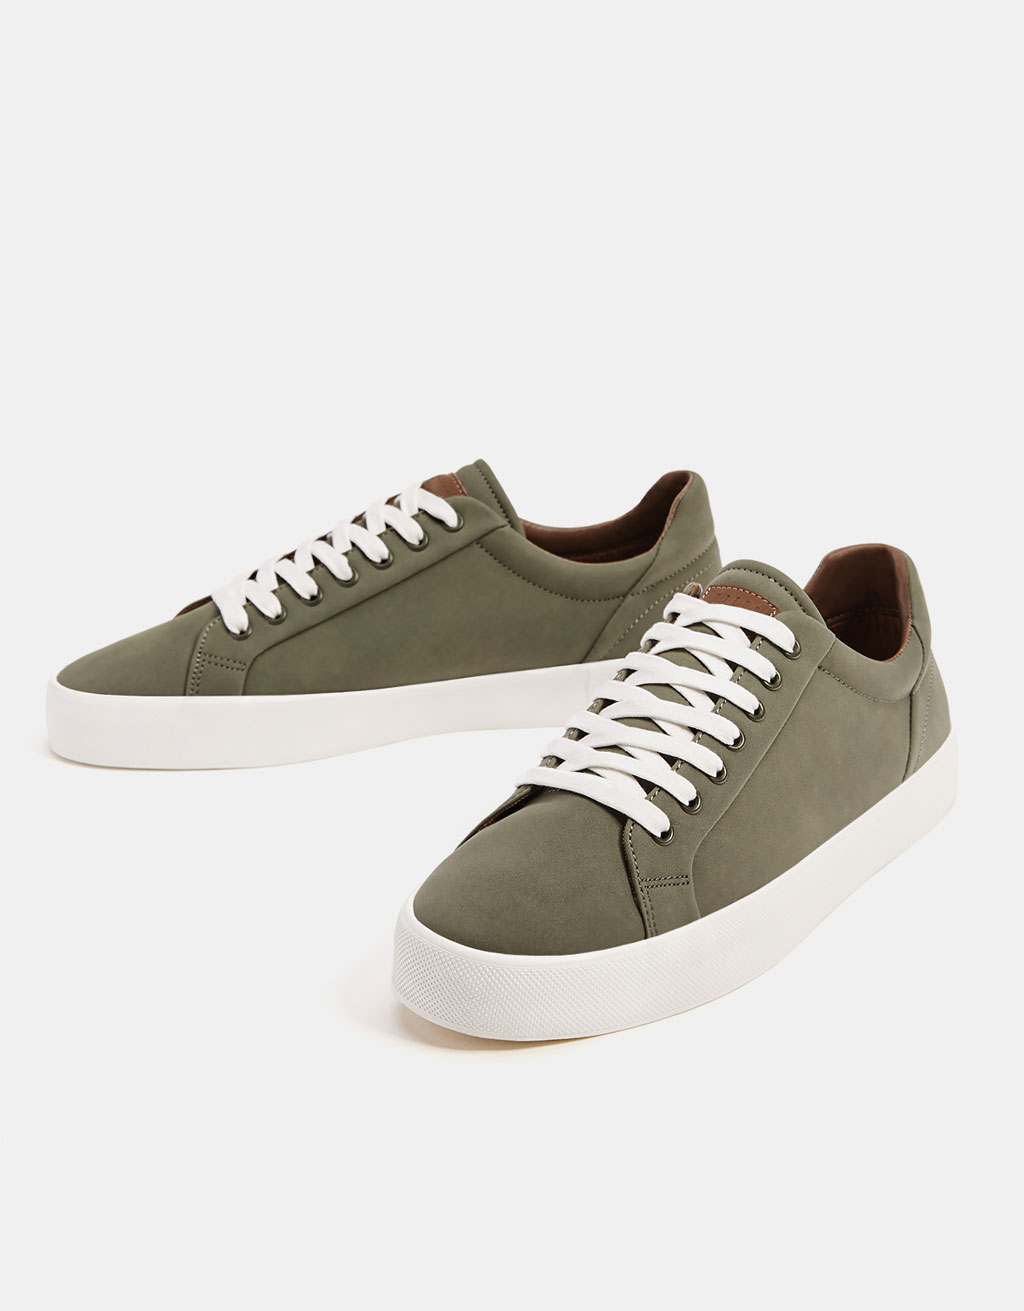 Men's khaki lace-up sneakers